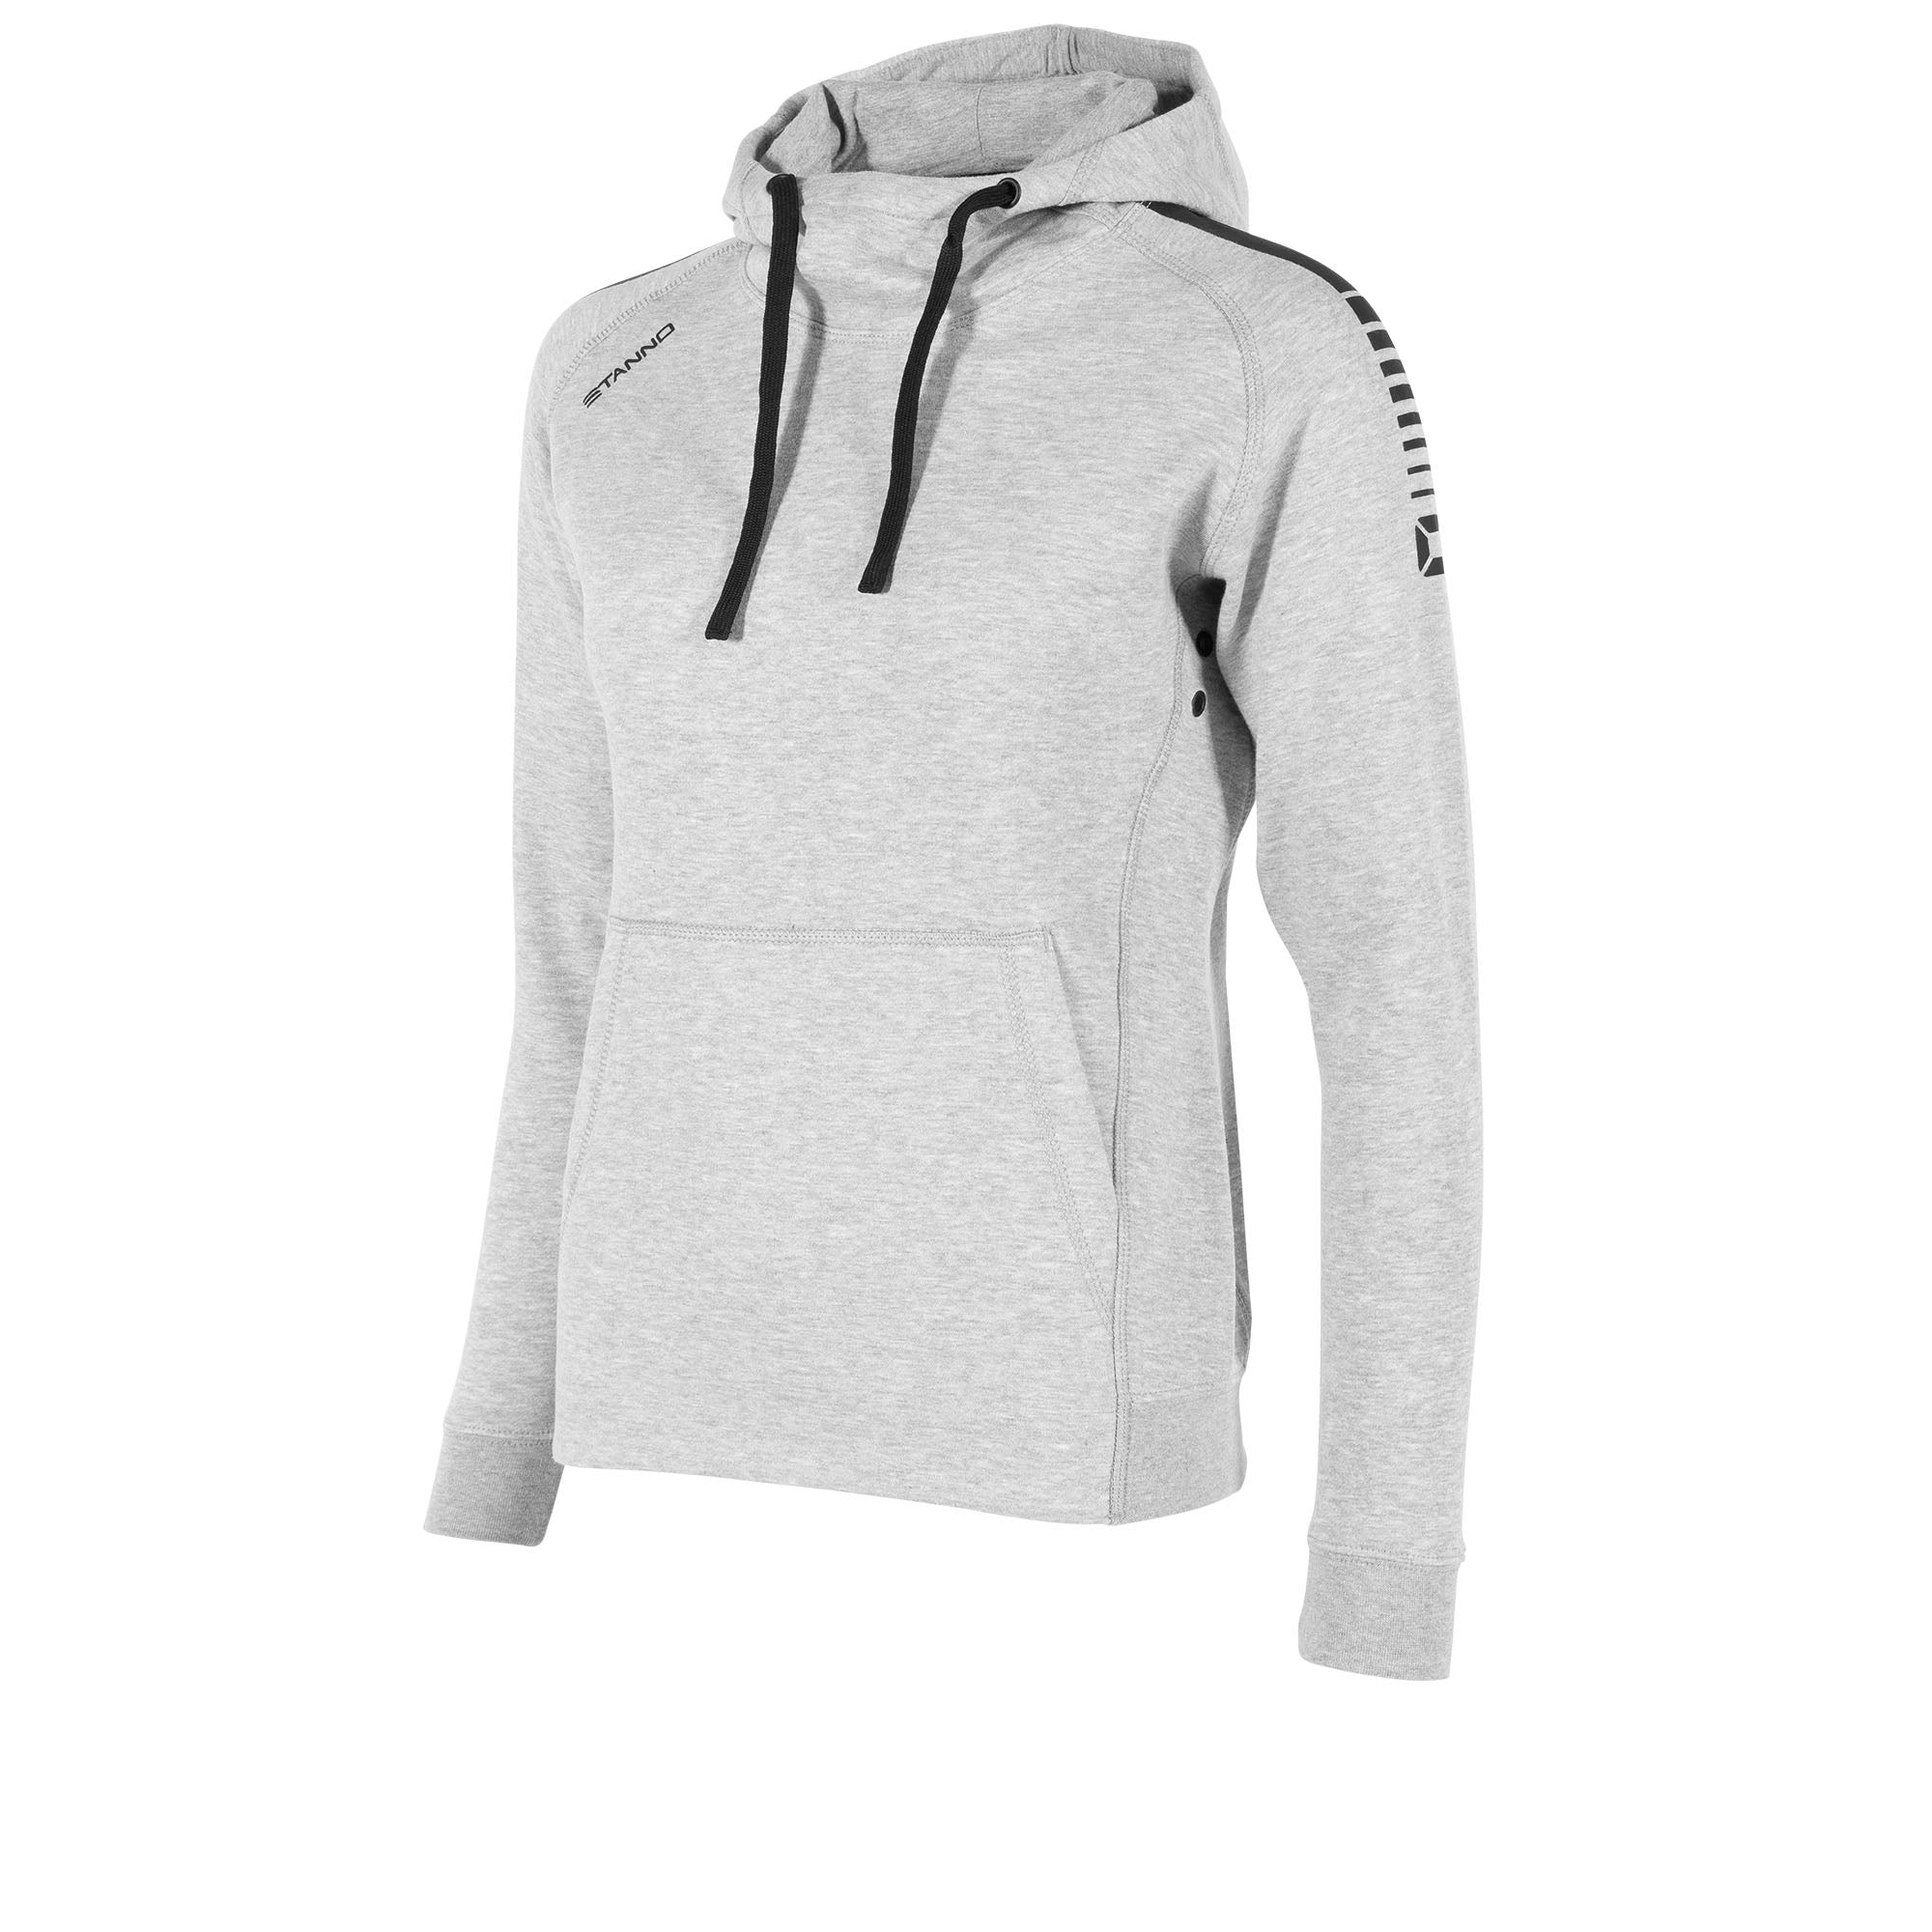 front view of a grey Stanno Ease Hoodie Ladies with black drawcord and shoulder printed design. Front Kangaroo pouch.